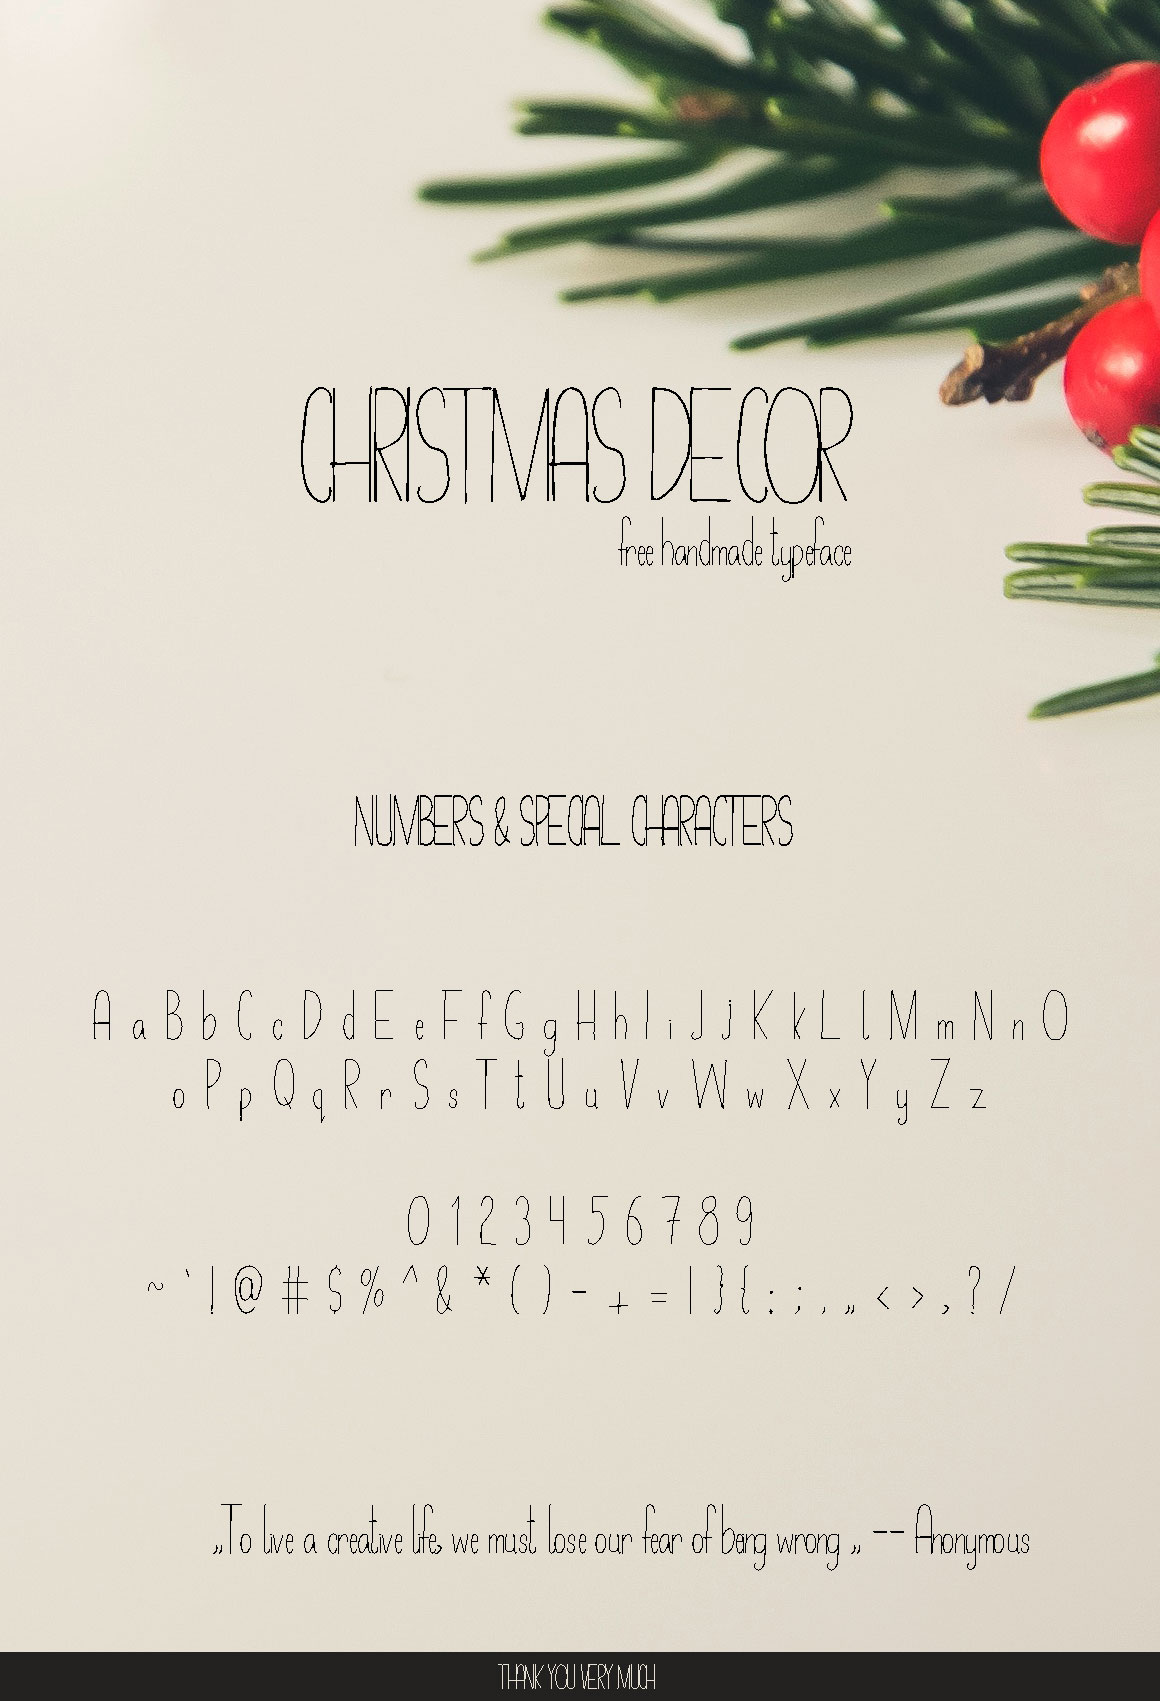 Image gallery for Christmas Decor font  FontSpace